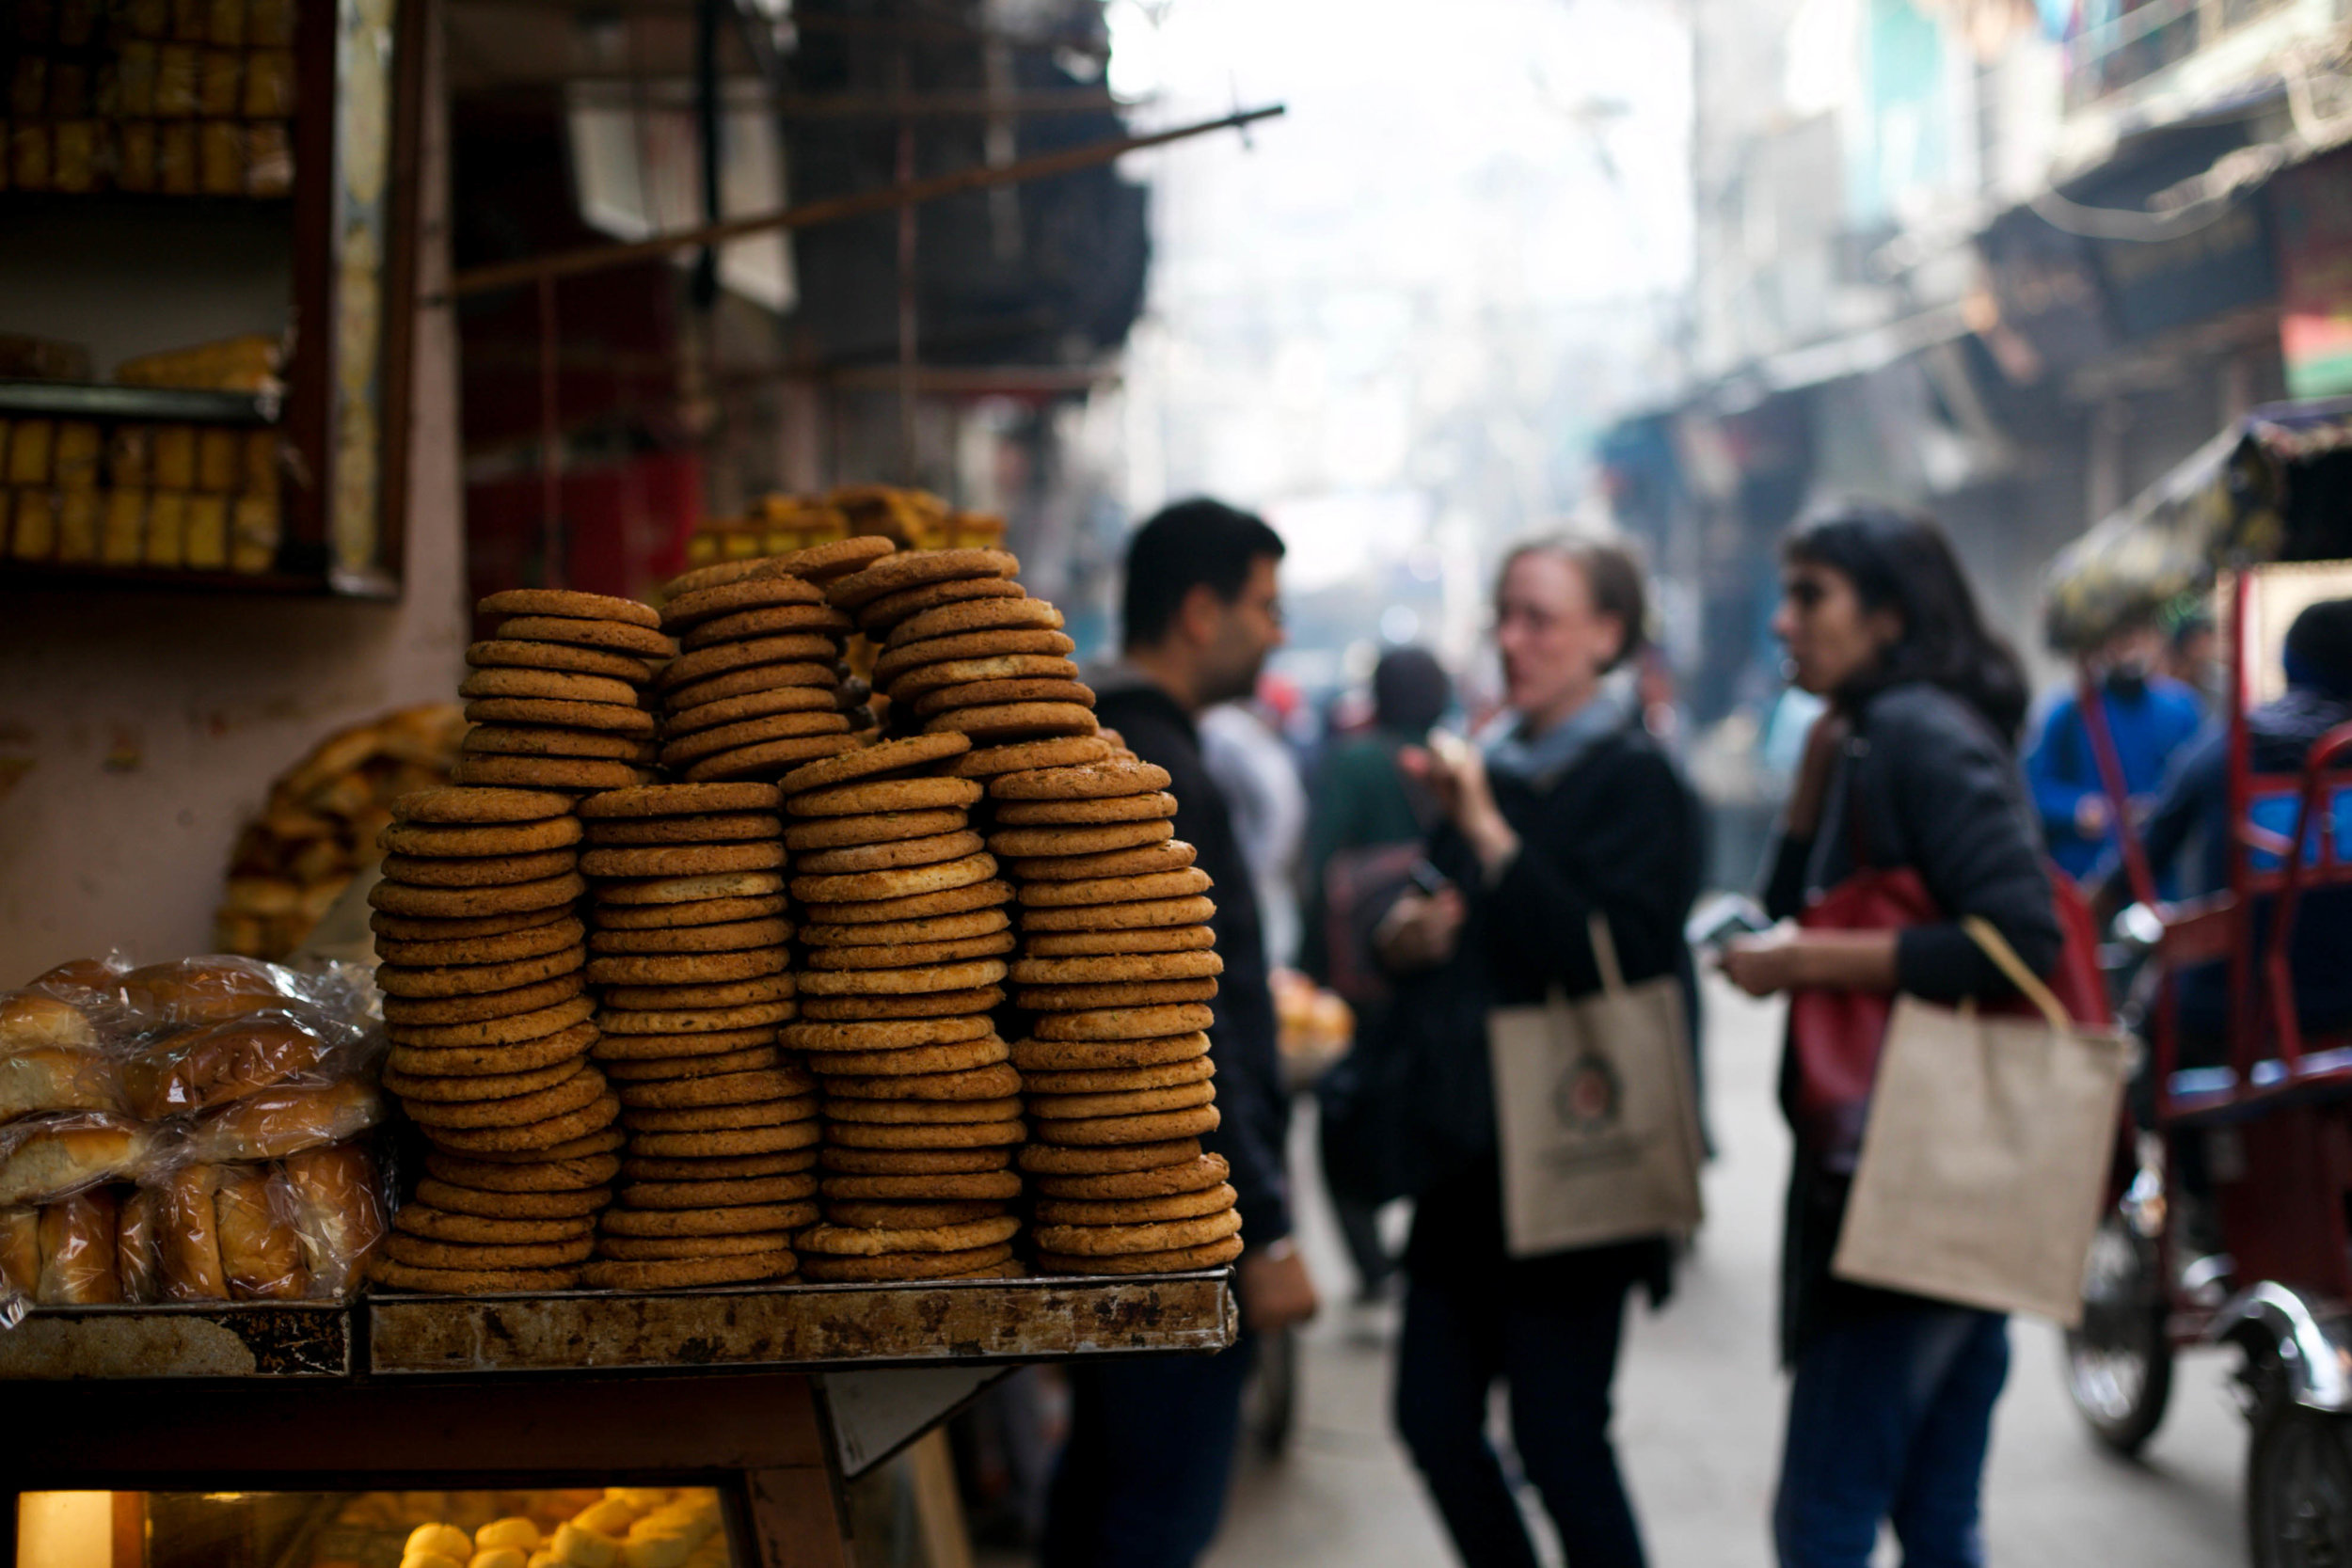 A walk through the gullies of Chandni Chowk means seeing the streets slowly awaken, and experiencing immersively the noise and chaos of hundreds of different livelihoods in the oldest parts of the capital.